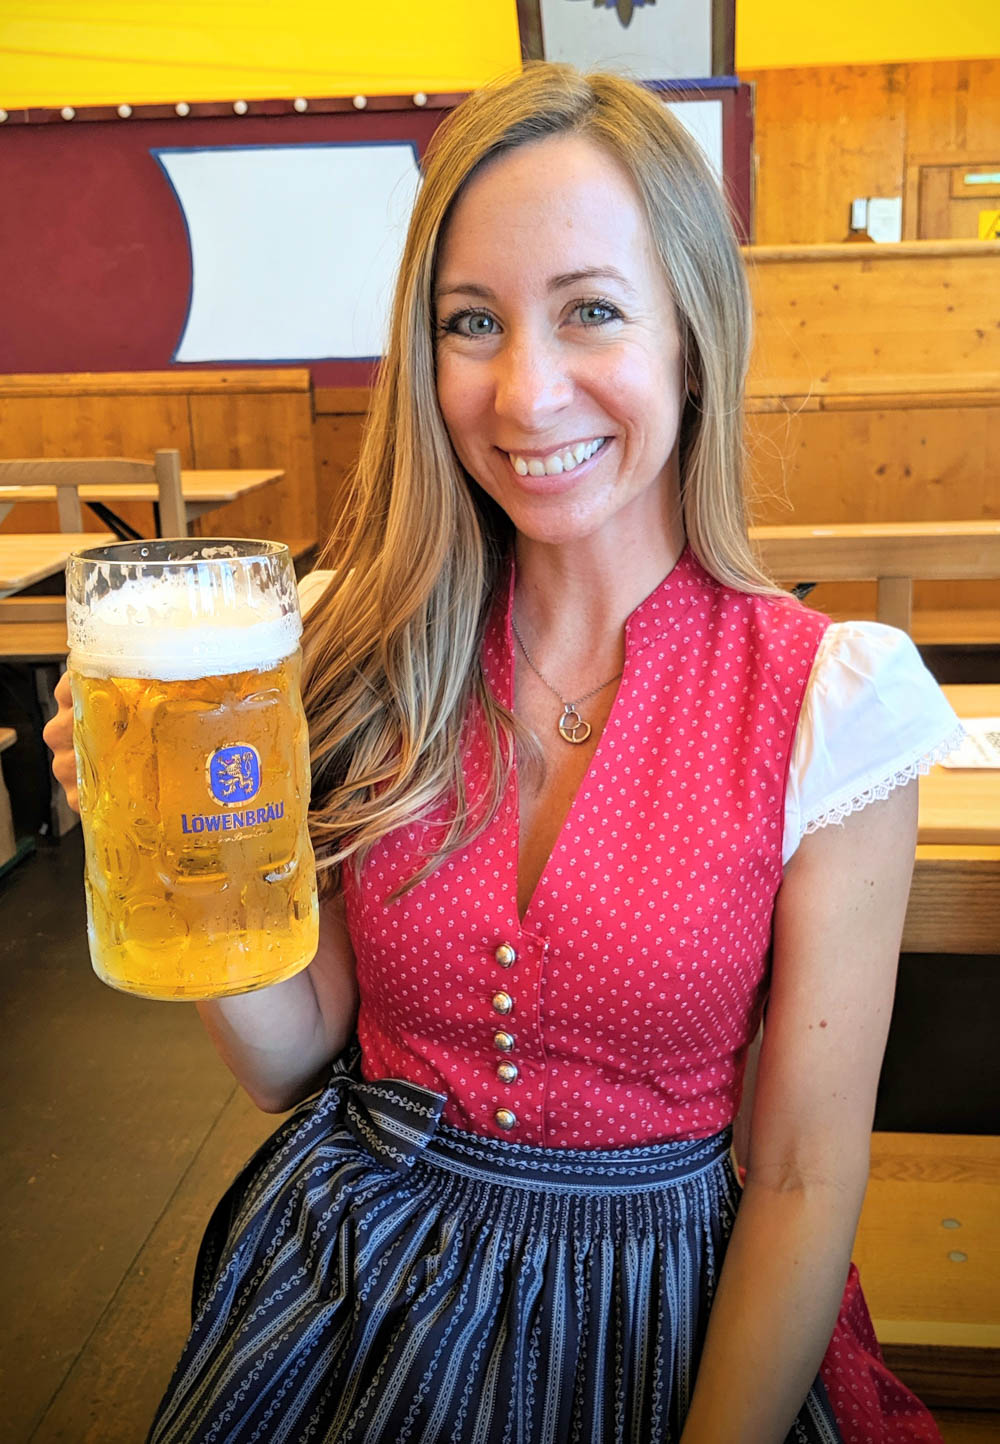 Oktoberfest party beer: What kind of beer to serve at your oktoberfest party   Lowenbrau mass at Oktoberfest in Munich, Germany